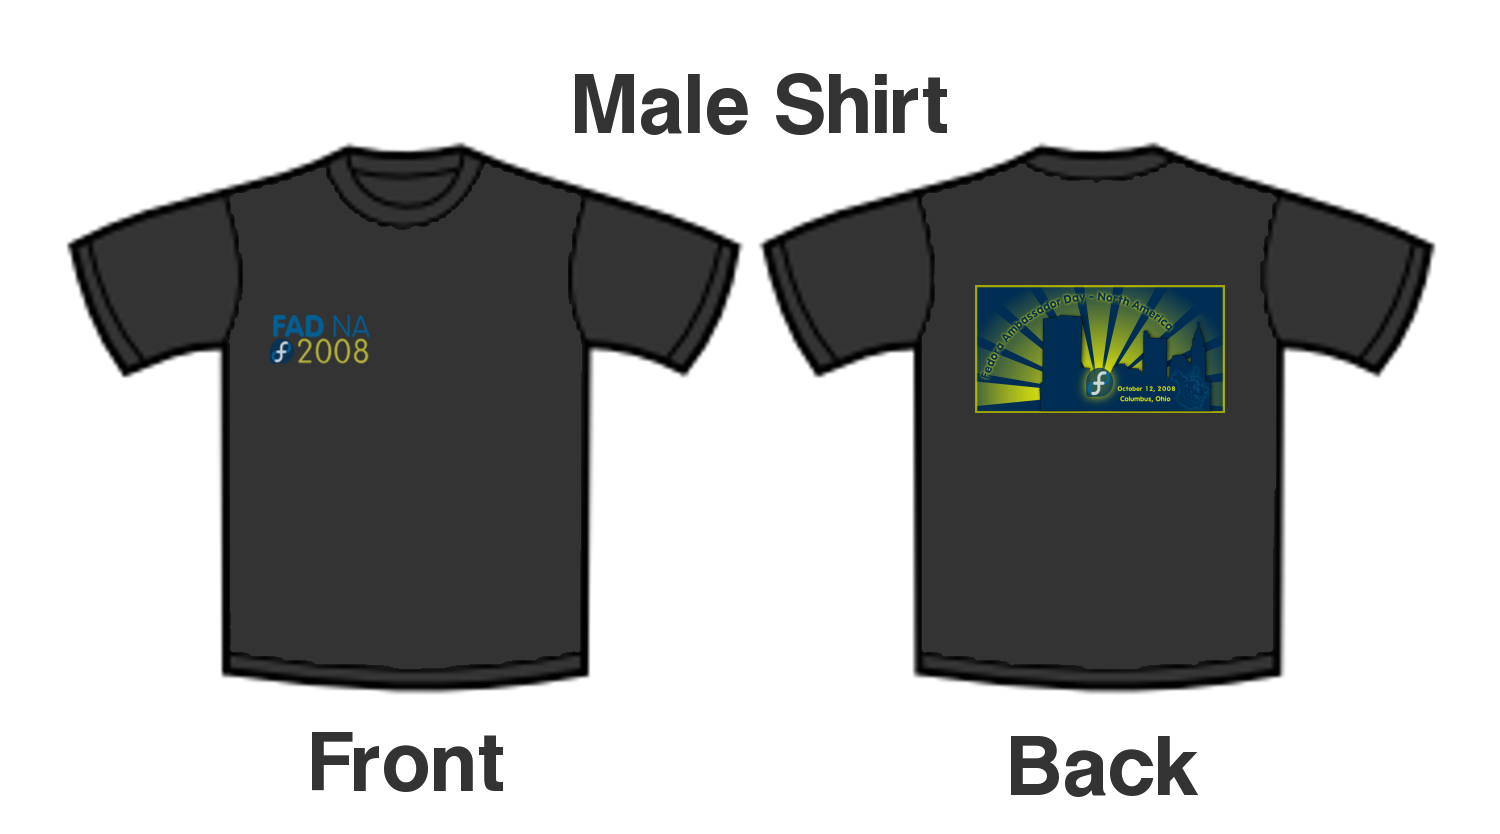 Design your own t-shirt front and back - Fadna2008 Tshirts Png